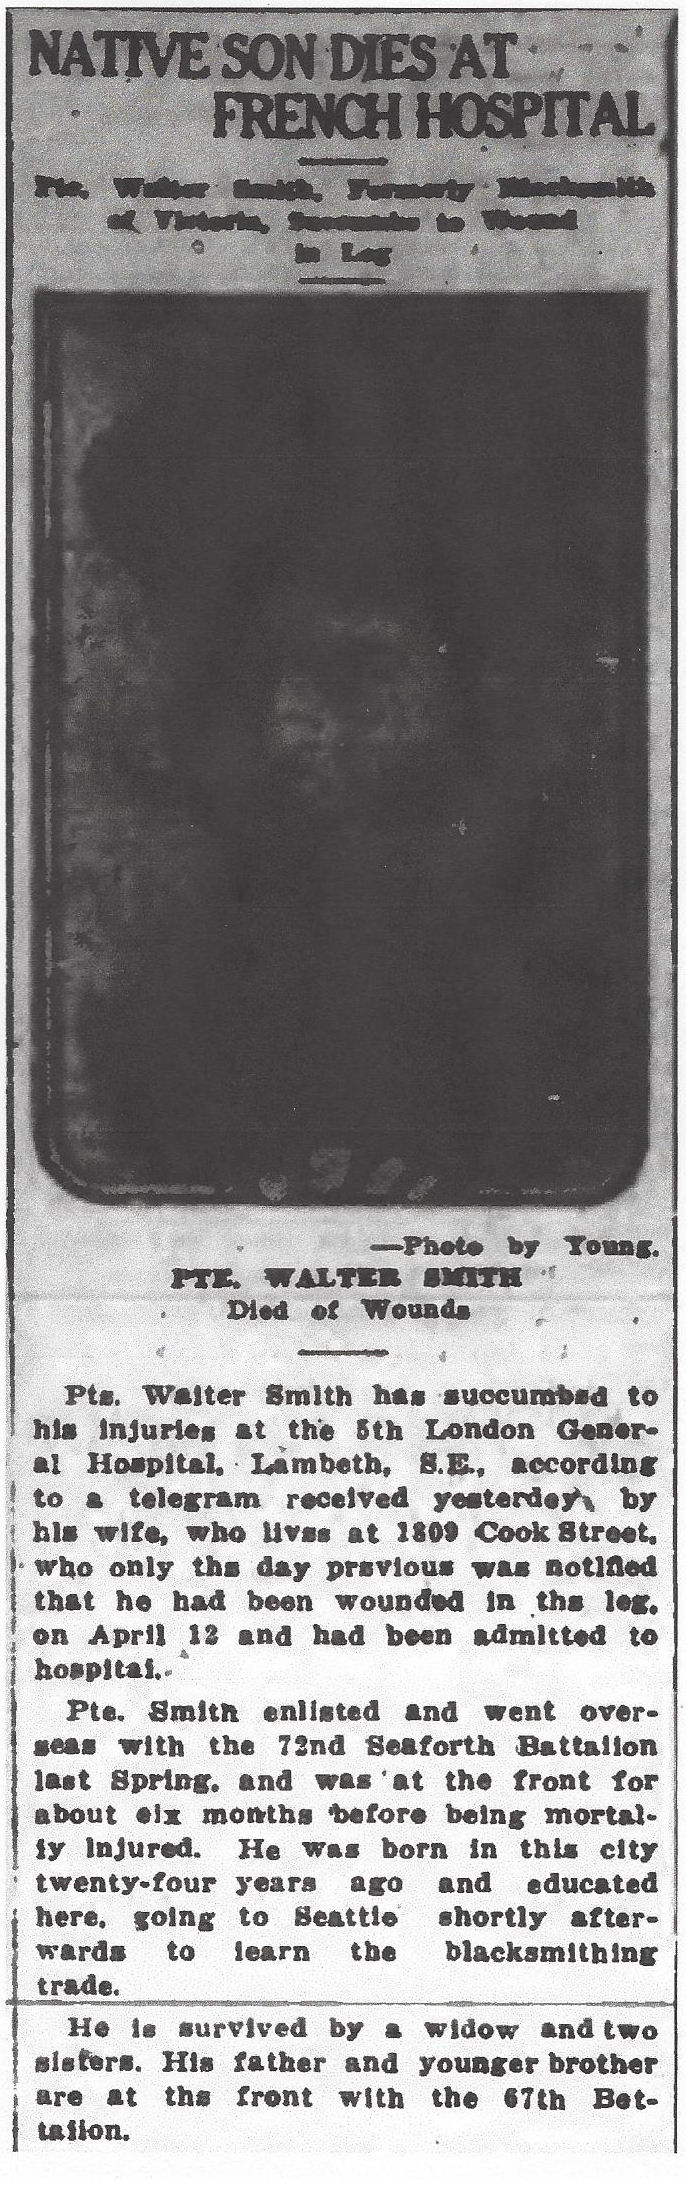 Newspaper clipping– From the Daily Colonist of April 24, 1917. Image taken from web address of http://archive.org/stream/dailycolonist59y116uvic#page/n0/mode/1up